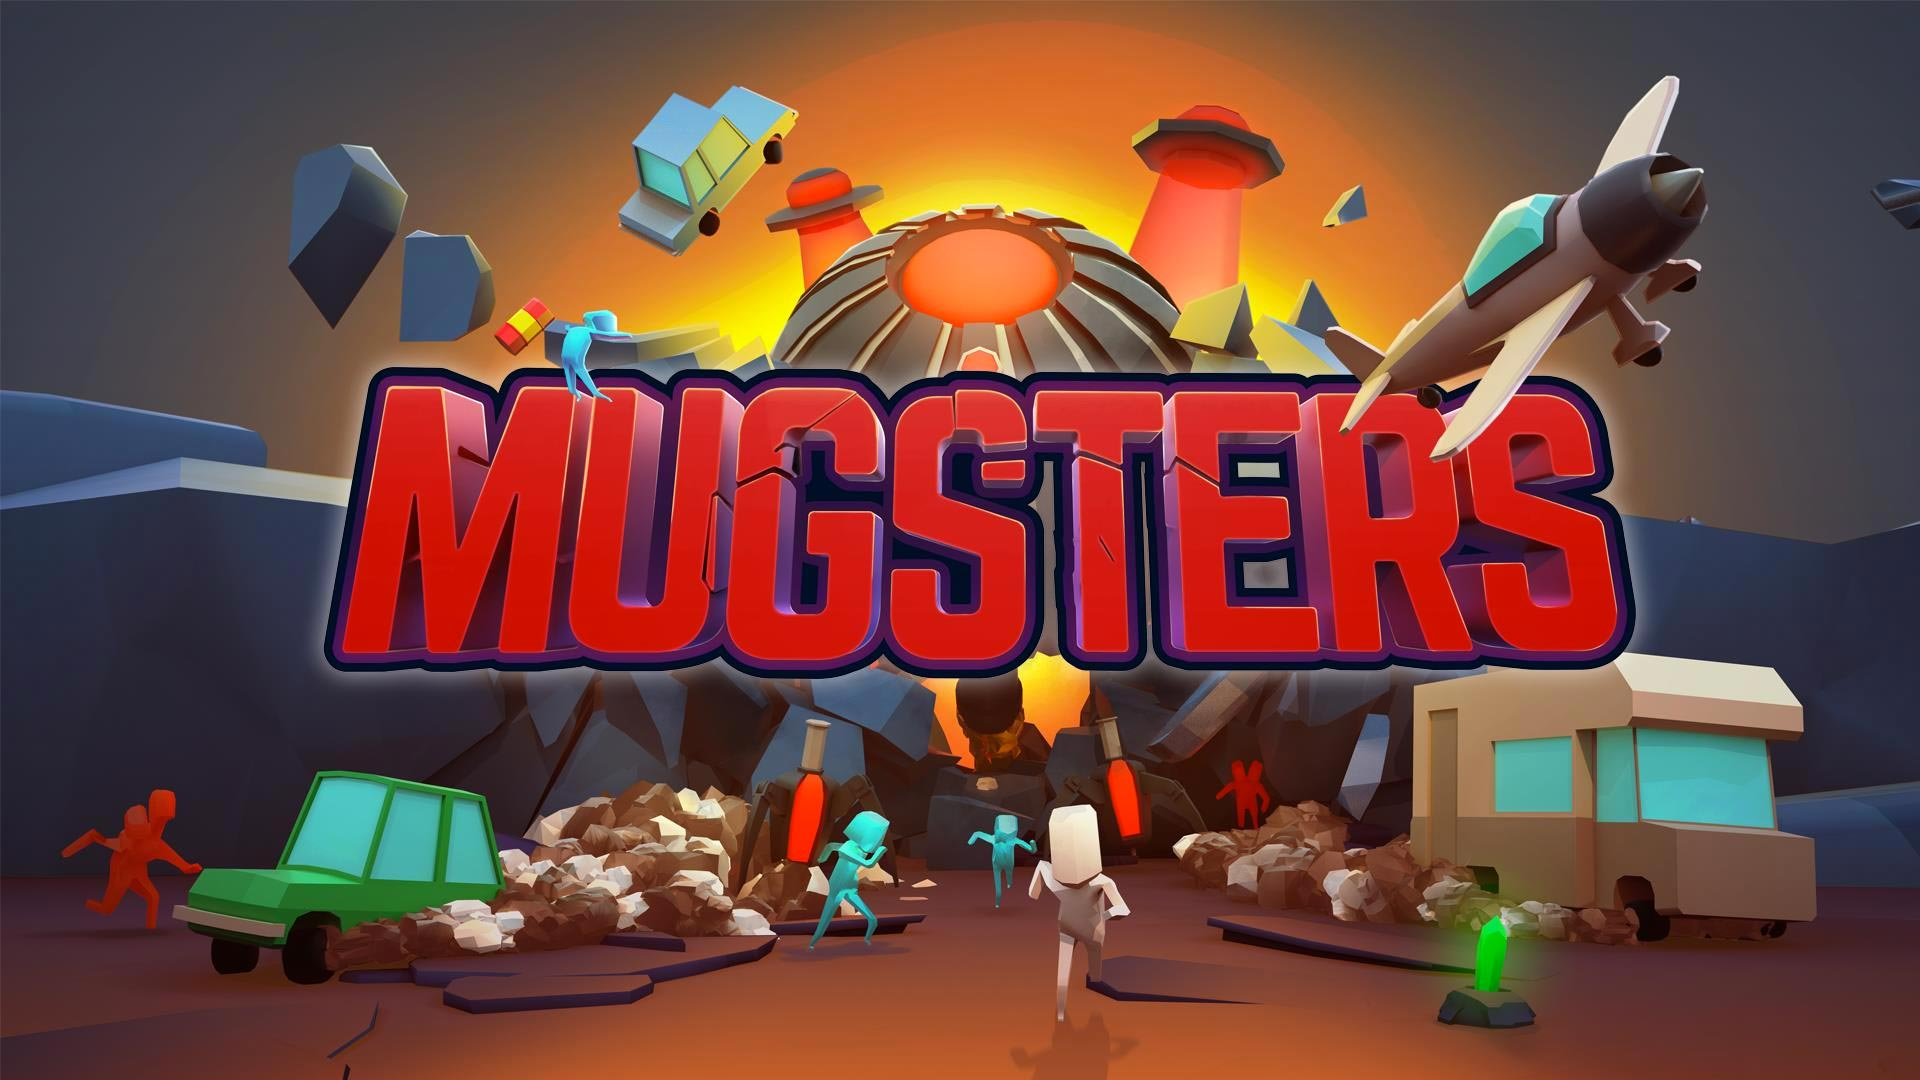 Mugsters – The Aliens Have Arrived!